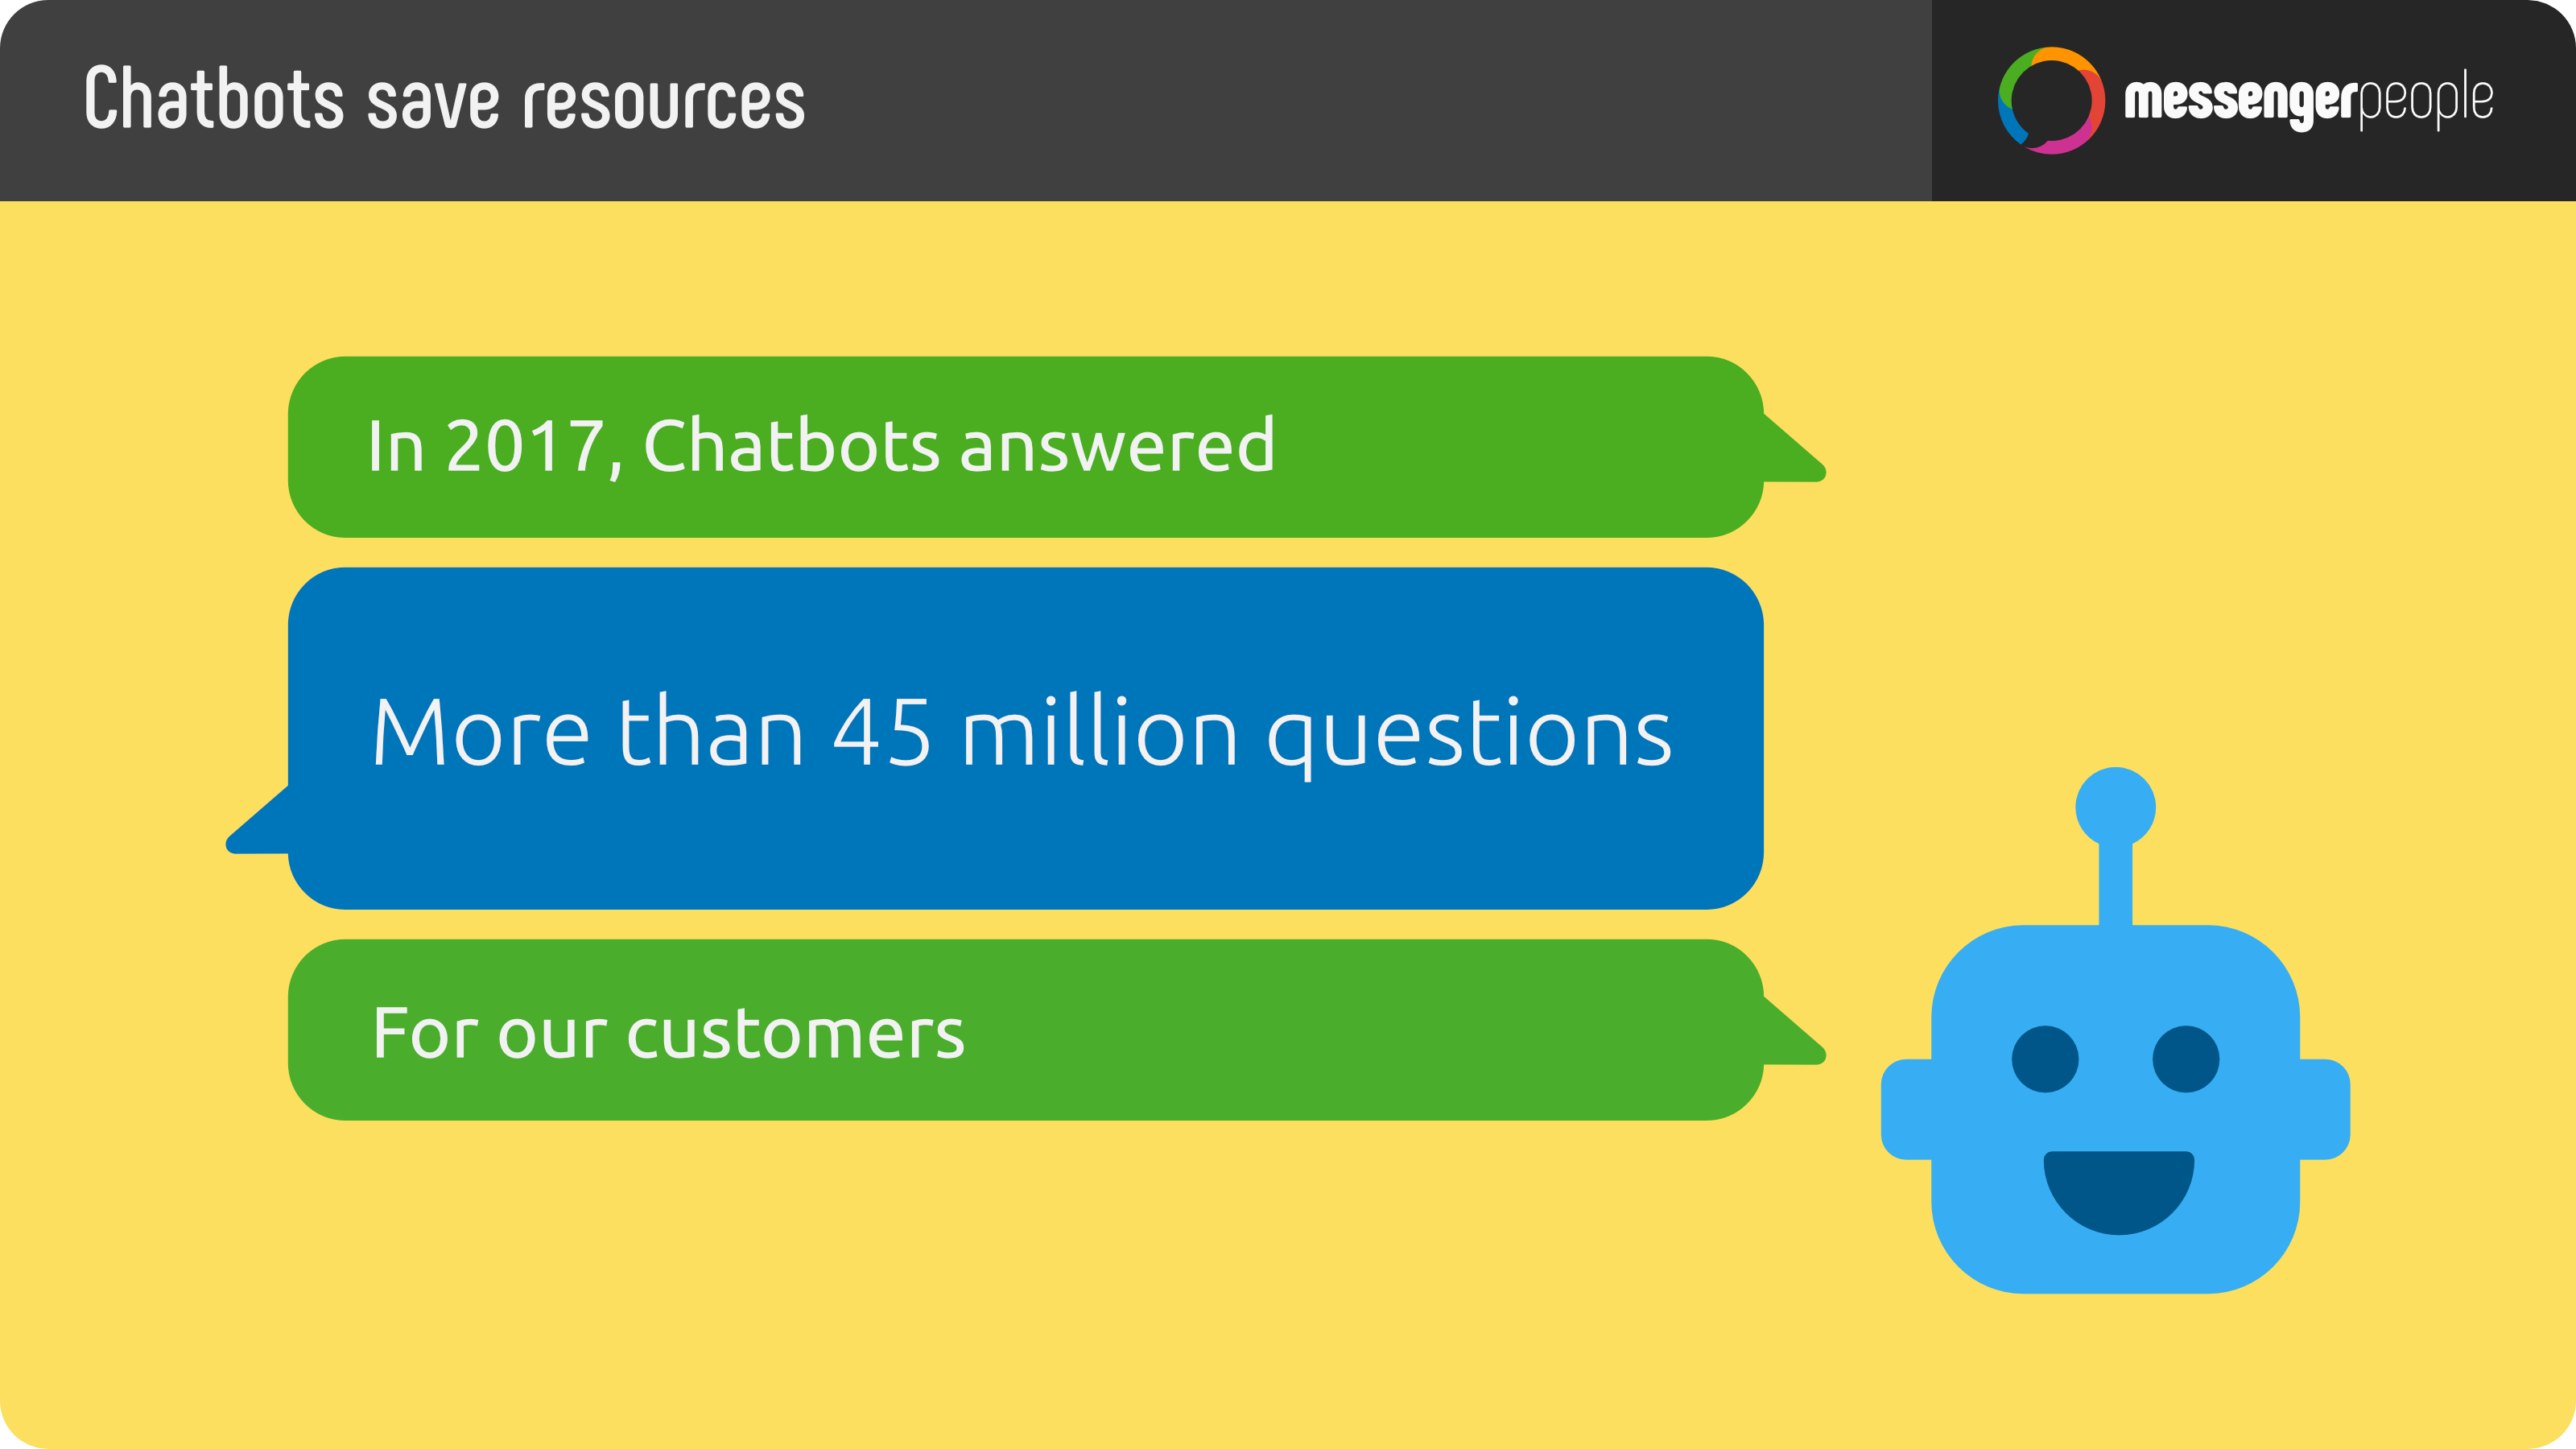 chatbots save ressources